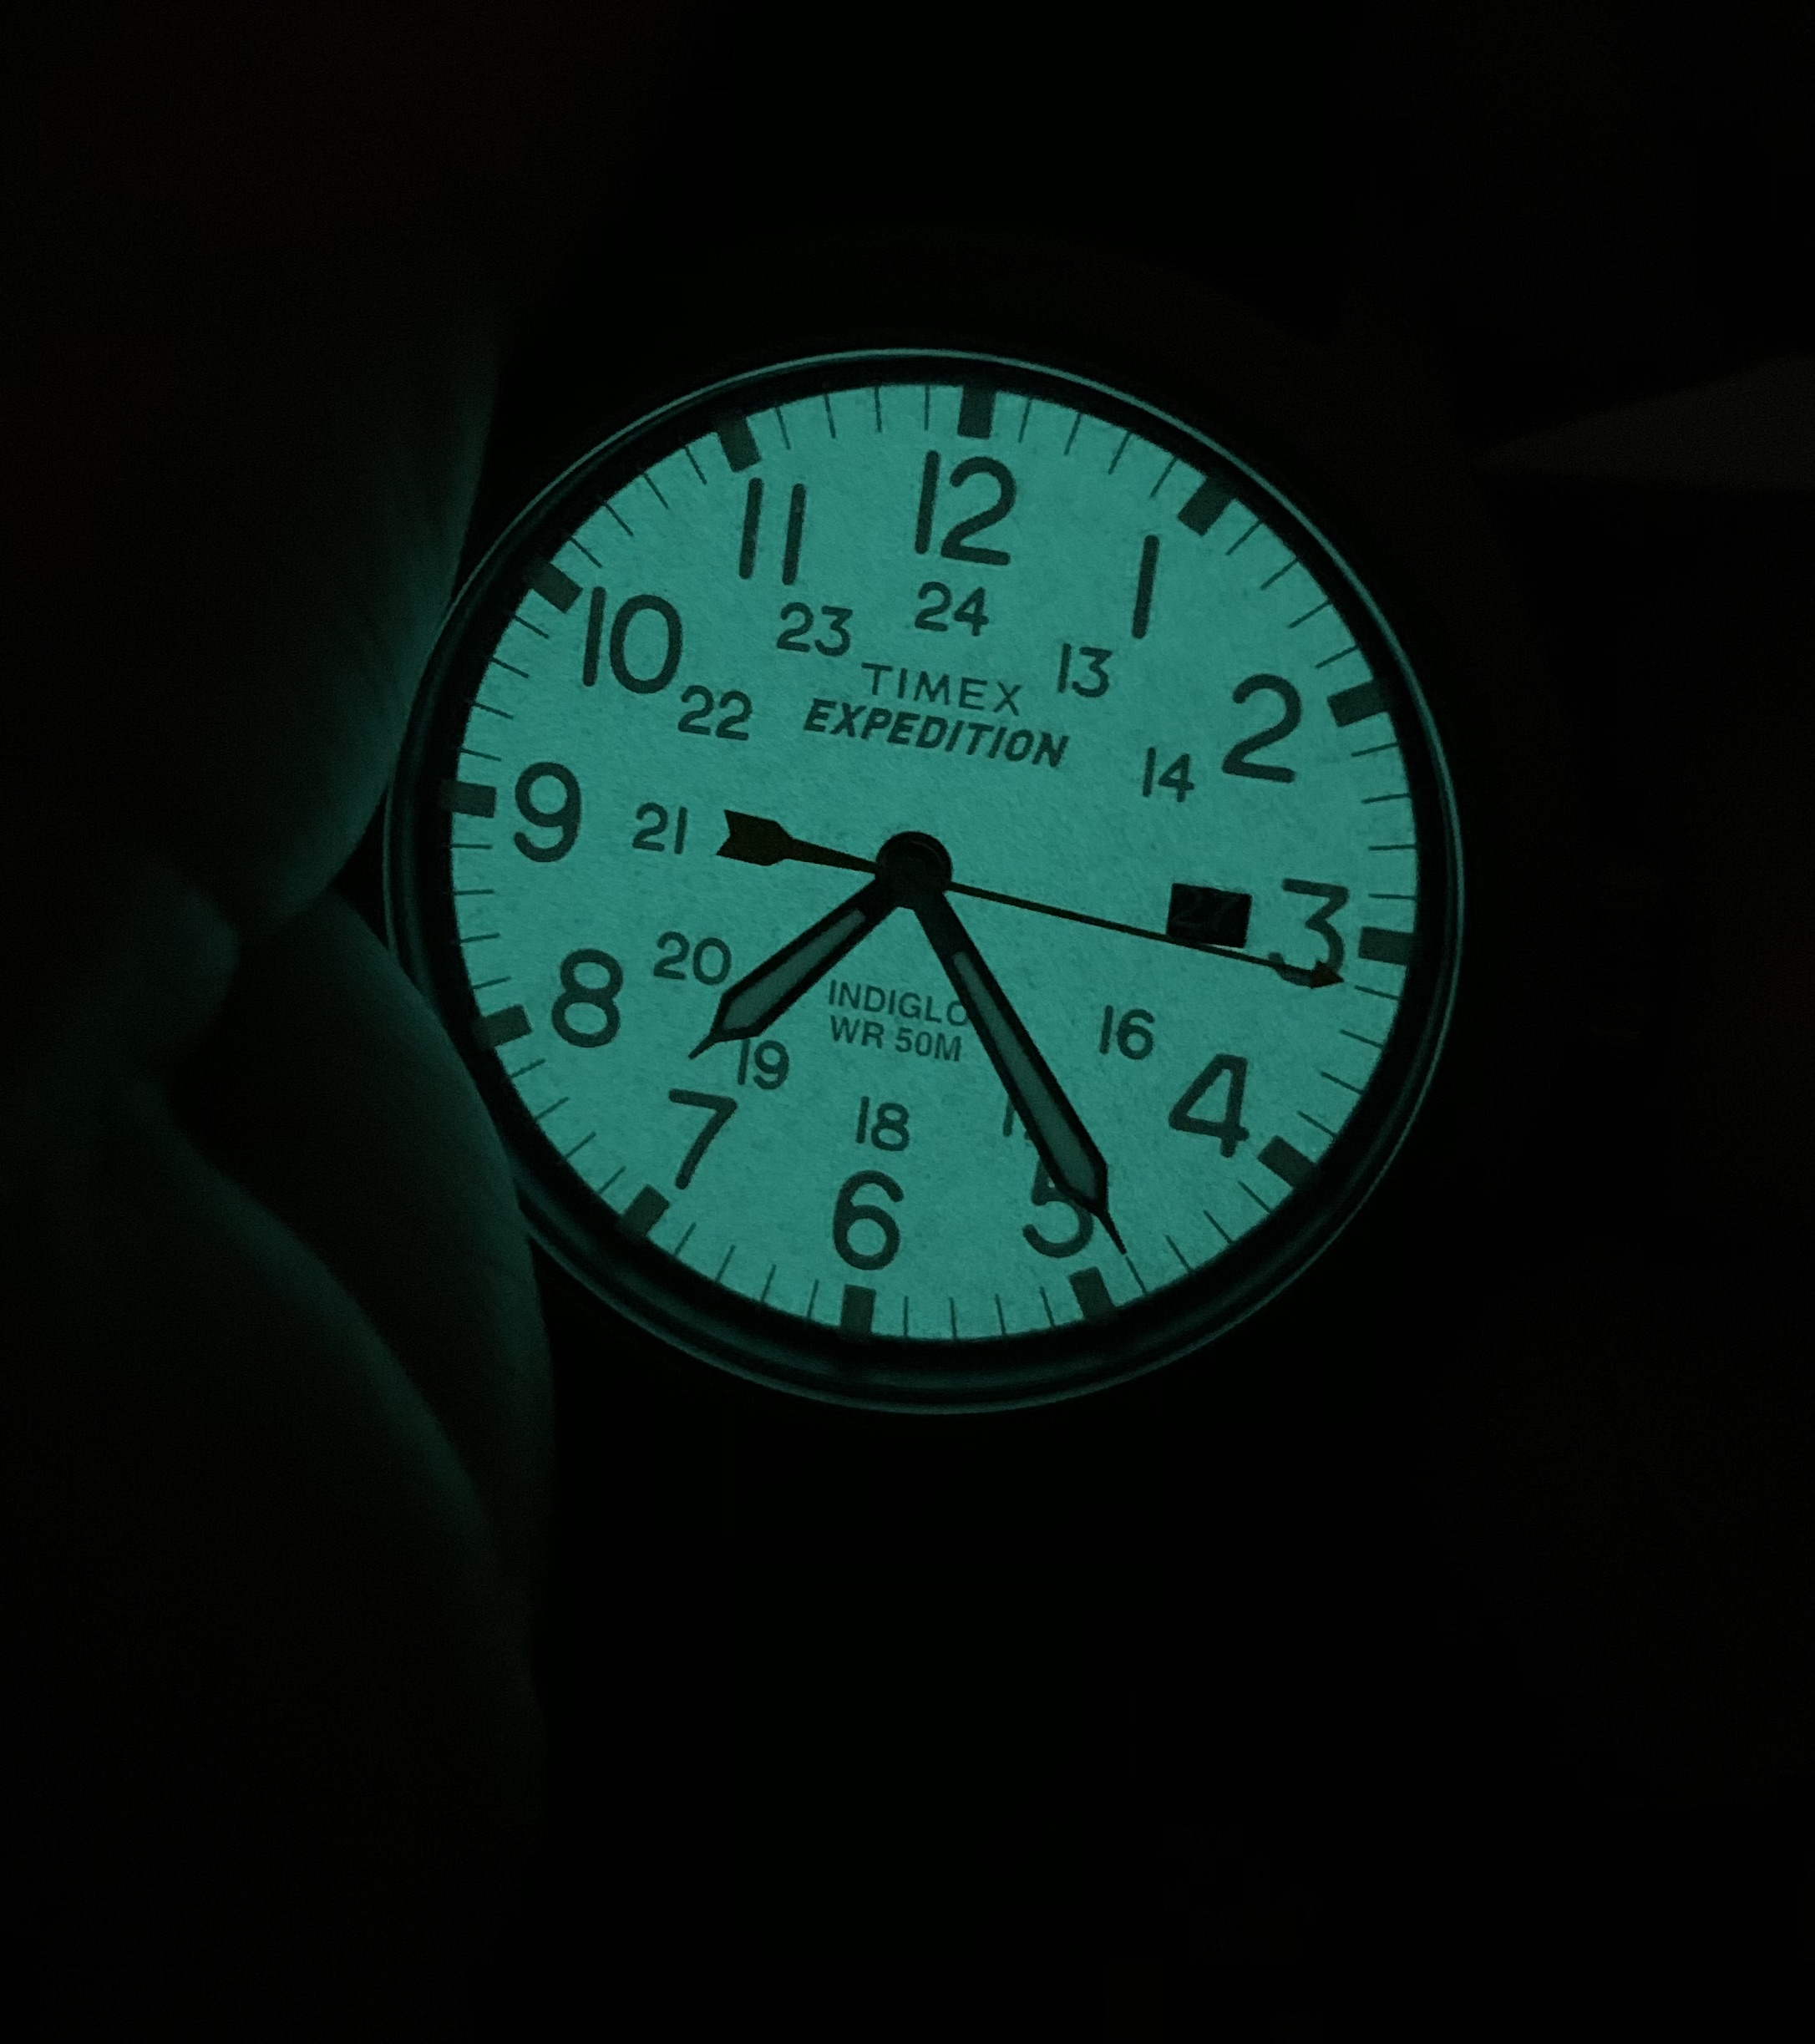 Timex Expedition with Indiglow